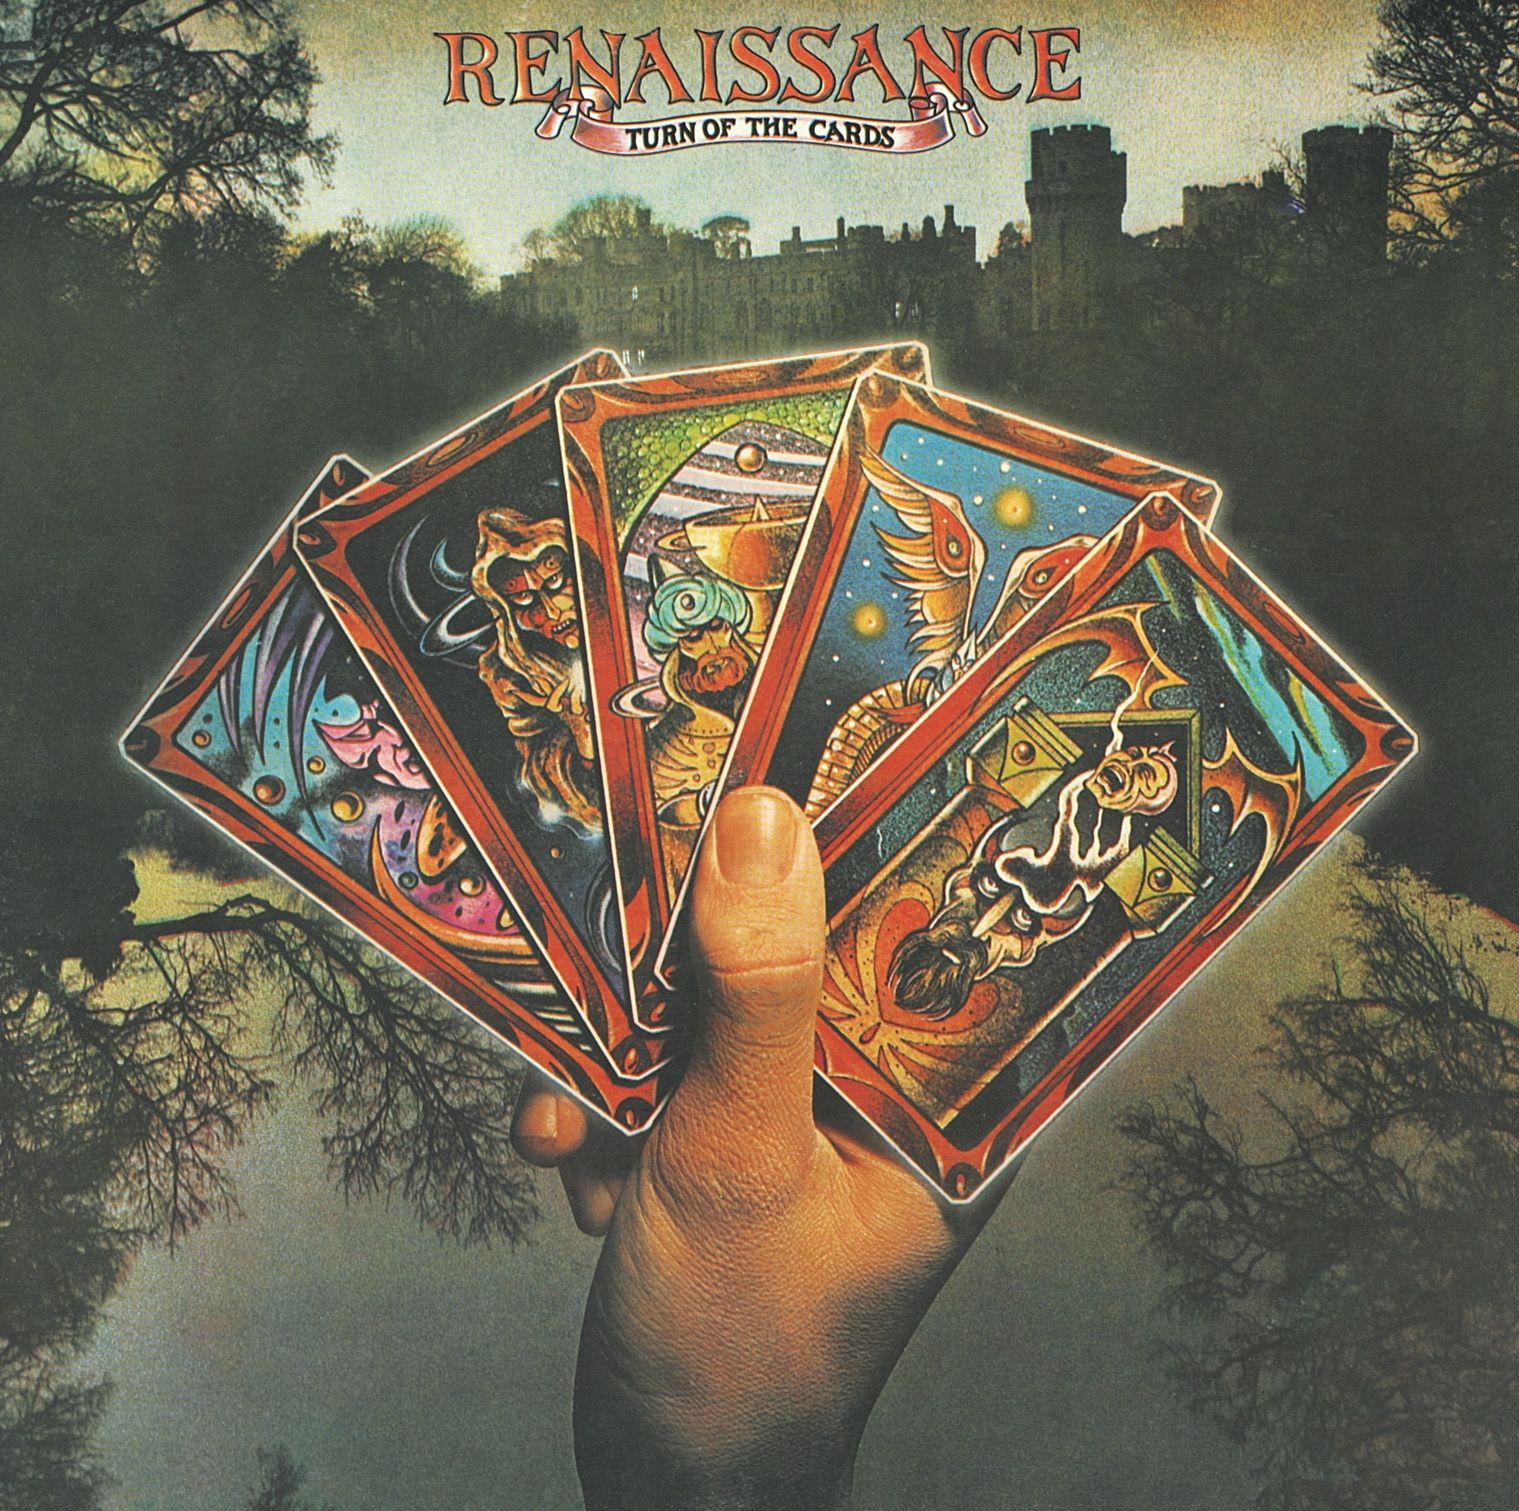 Renaissance – Turn of the Cards (Vinyl LP)